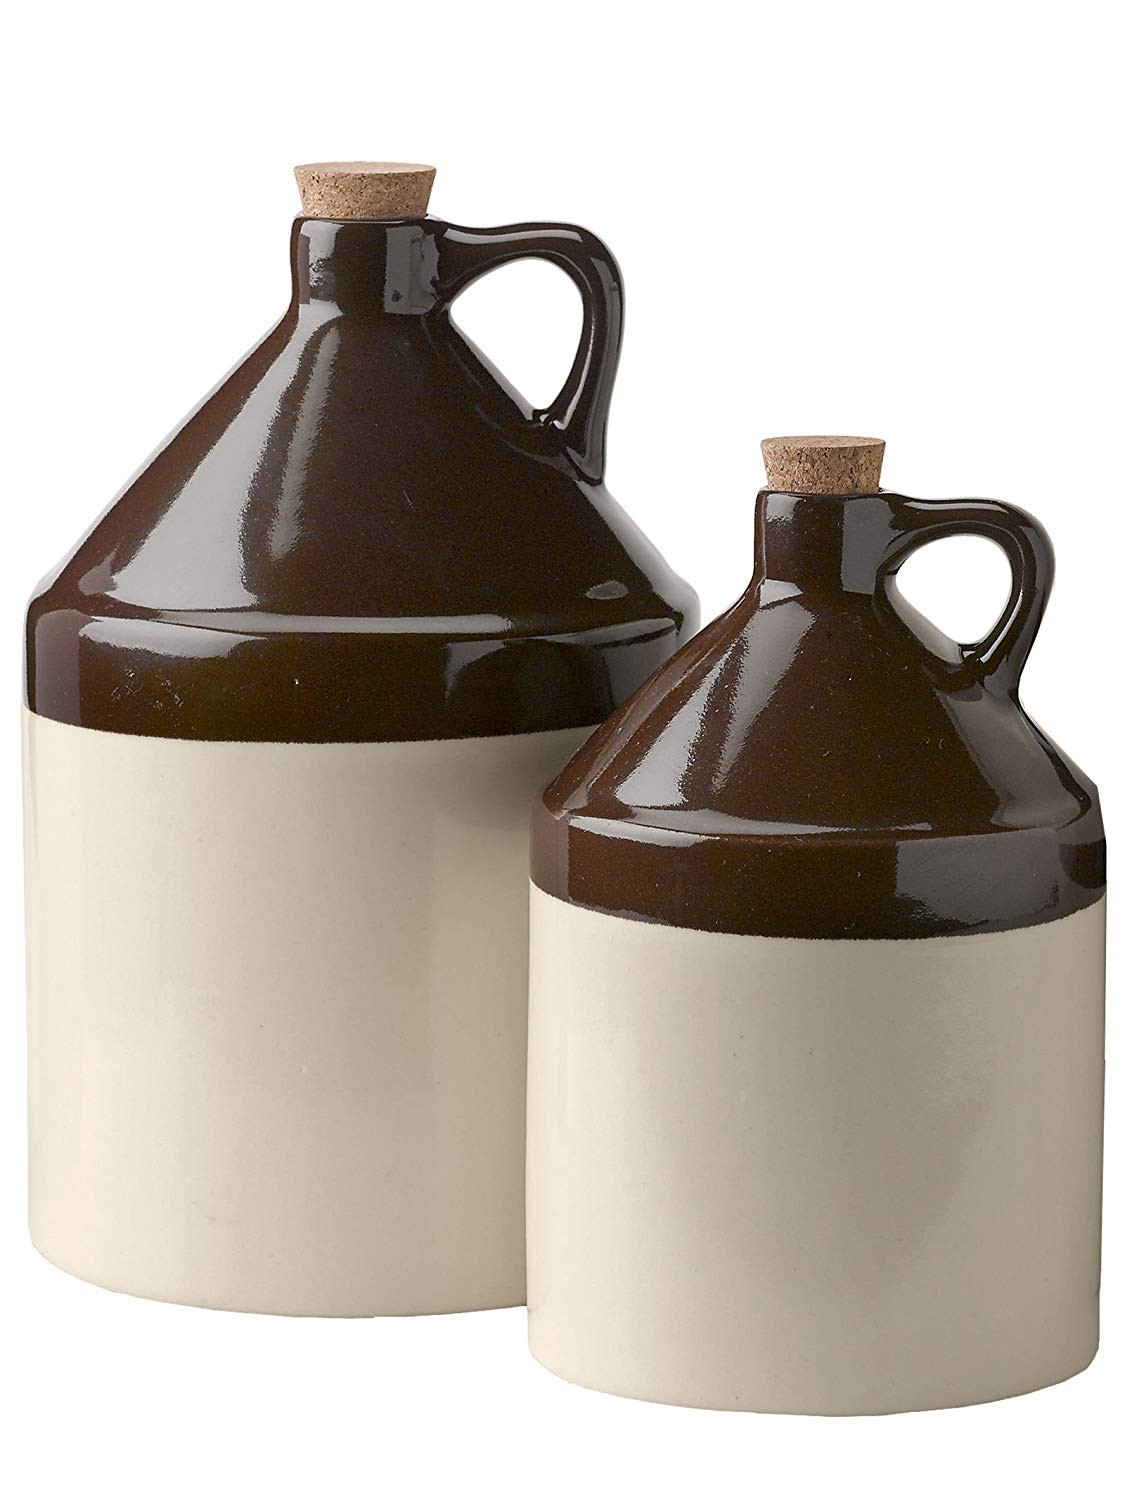 Mackenzie Childs Flower Vase Of Amazon Com Half Gallon Stoneware Jug Cutting Boards Carafes with Regard to Amazon Com Half Gallon Stoneware Jug Cutting Boards Carafes Pitchers